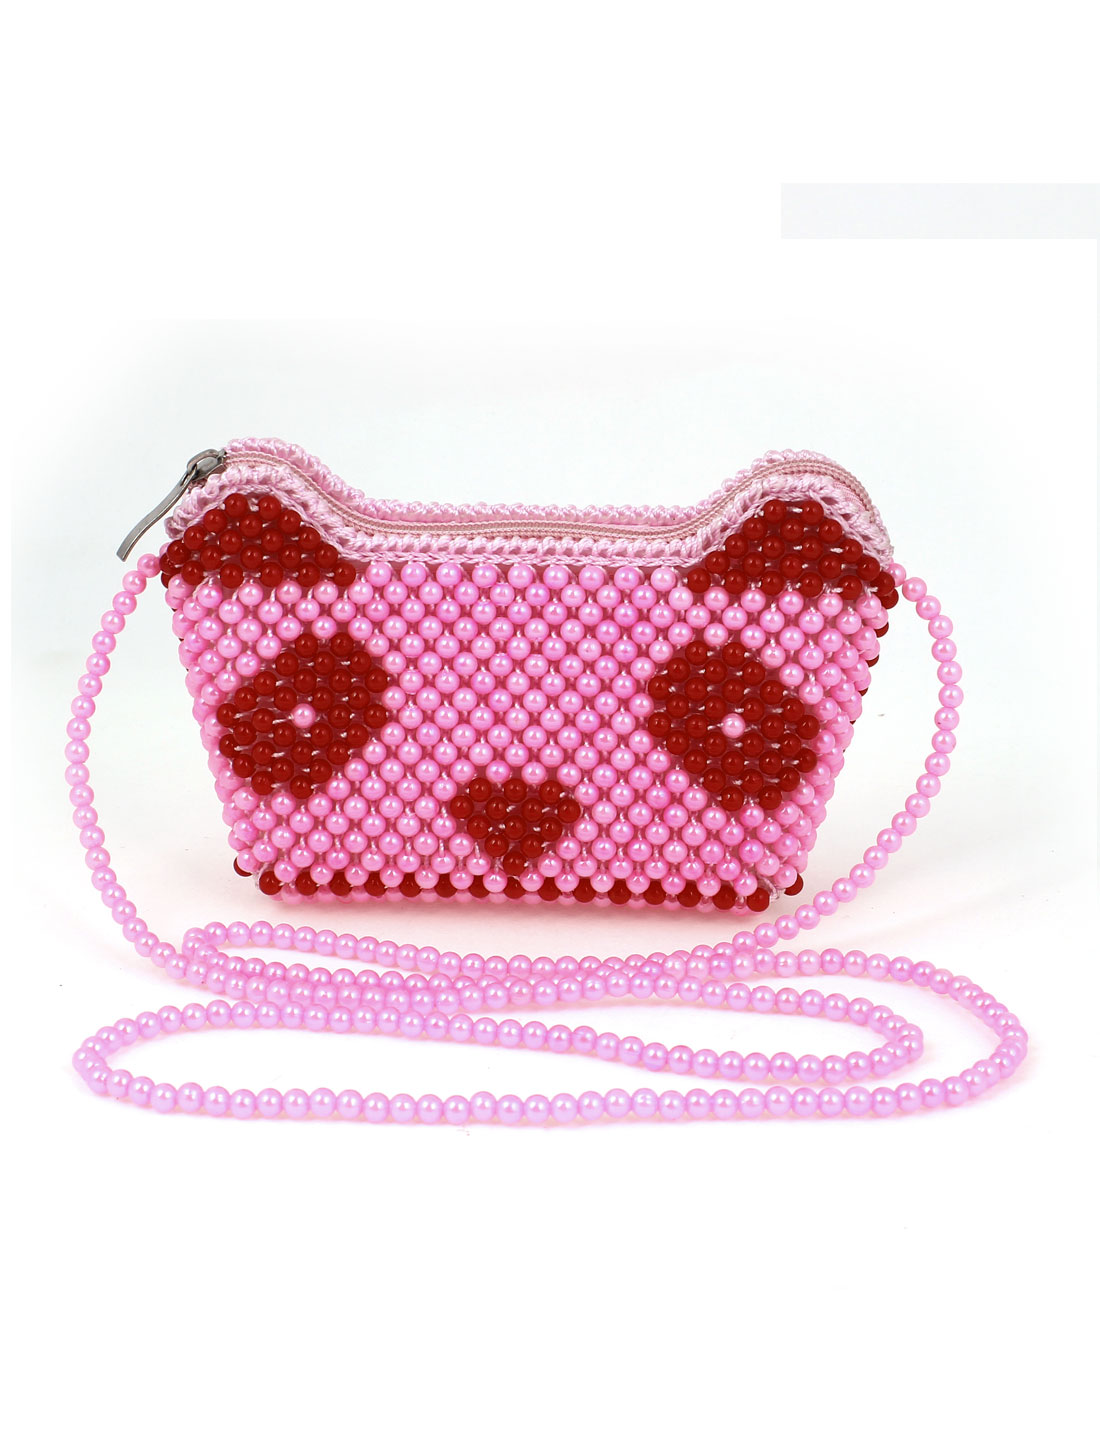 Lady Handmade Bright Pink Beaded Ingot Shaped Zipper Closure Wristlet Purse Handbag for Multi Occasion